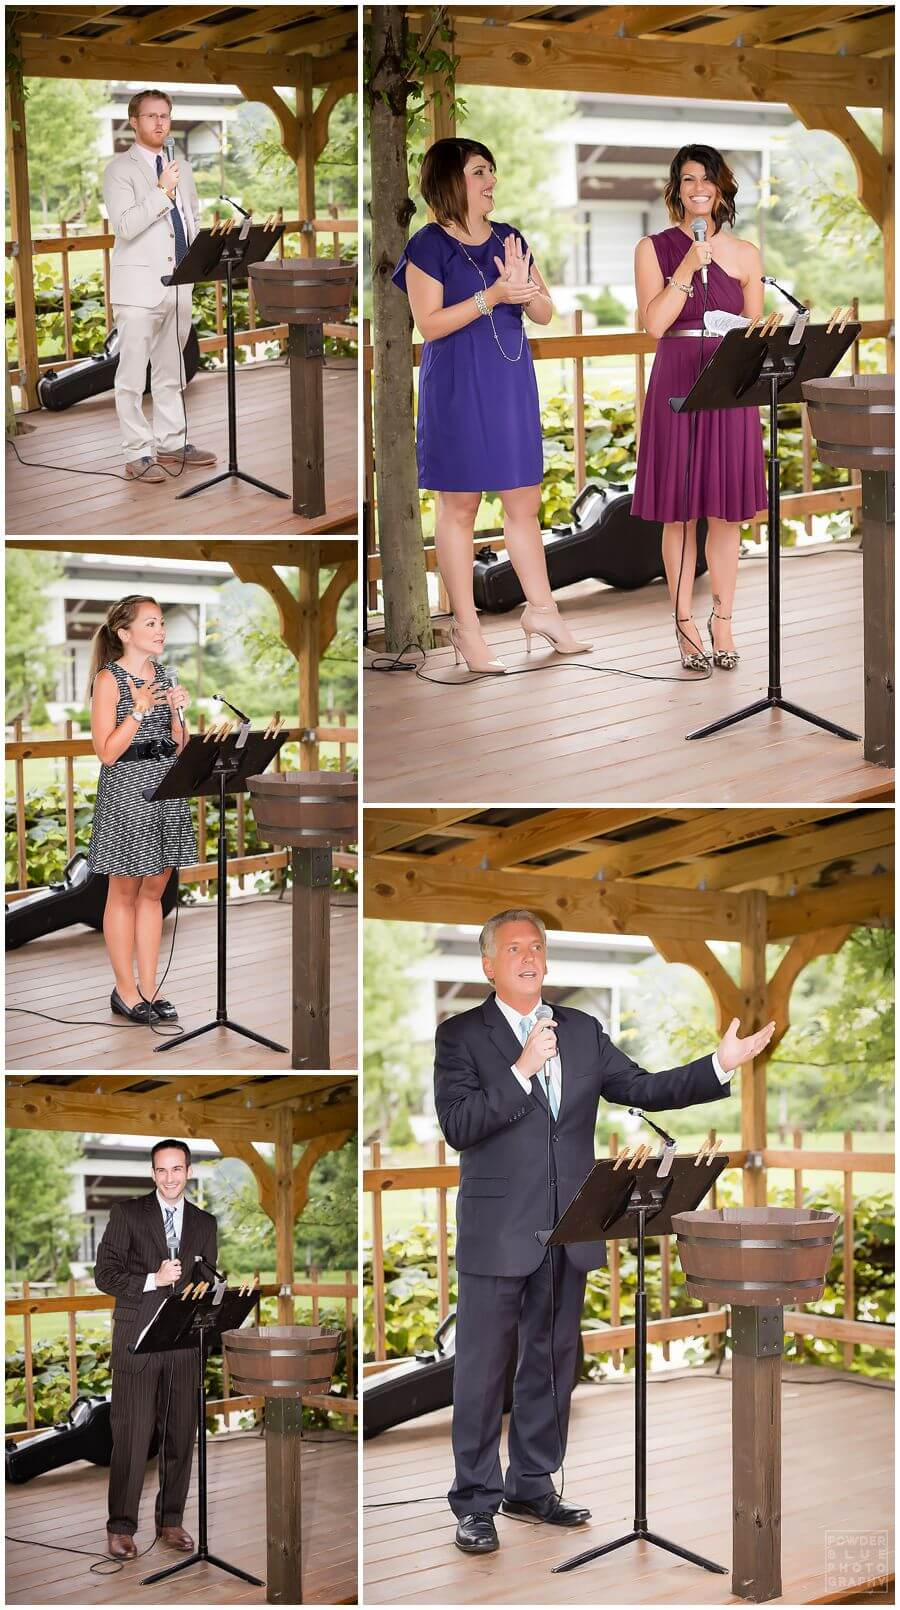 unlined charity event at la case narcisi winery in pittsburgh